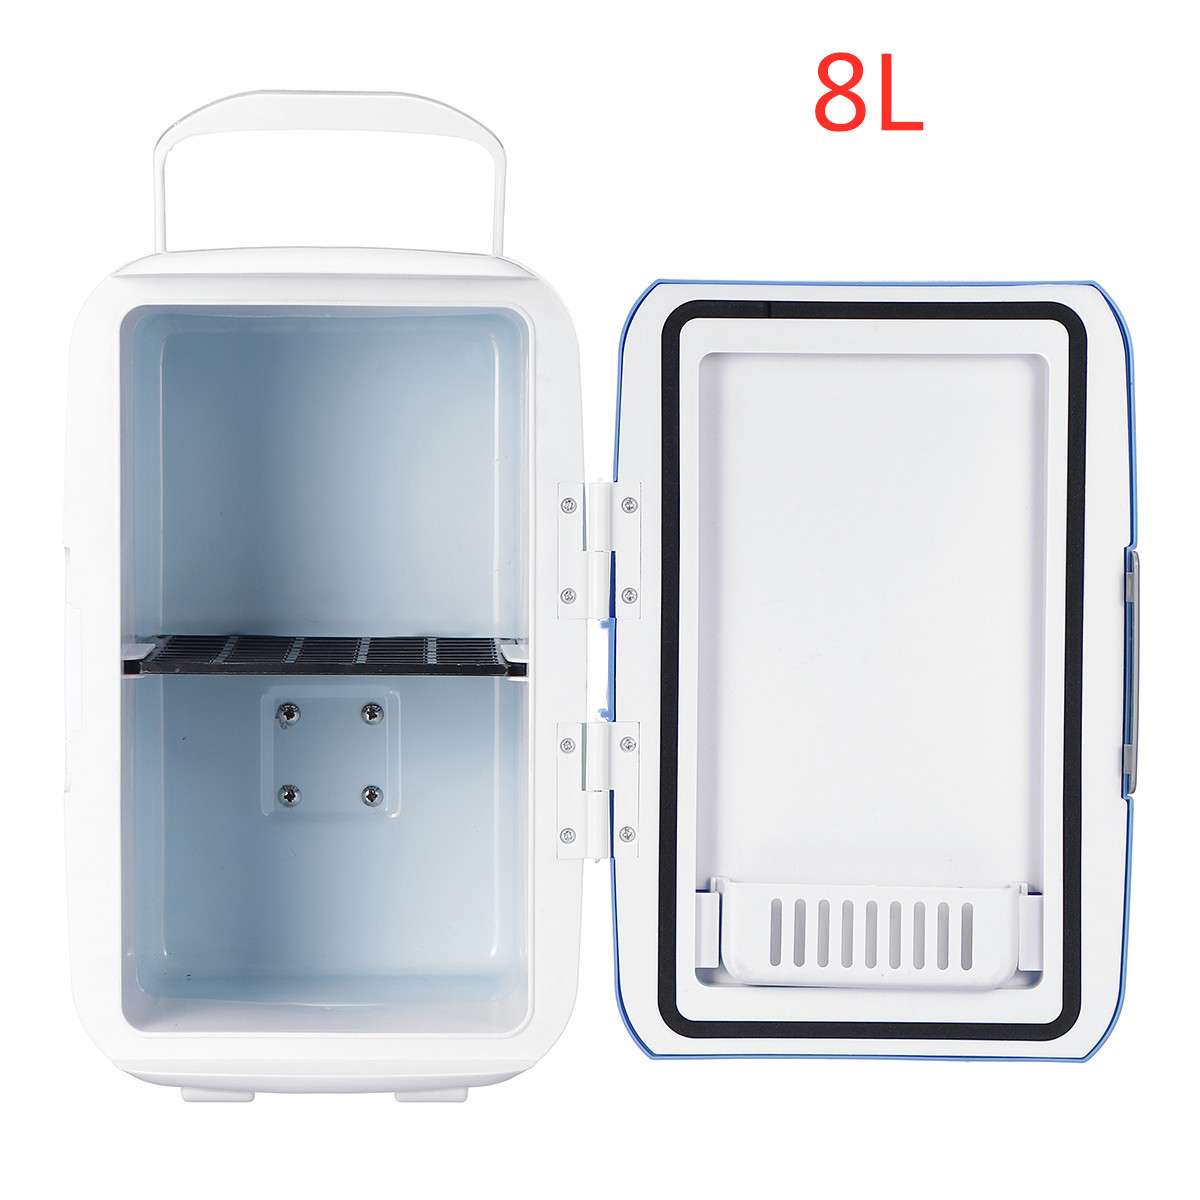 Coolbox For Traveling And Camping Portable Car Cool And Warm Electric Cool Box Luminiu Car Refrigerator 4l Dual Voltage Car Refrigerator For Car And Home